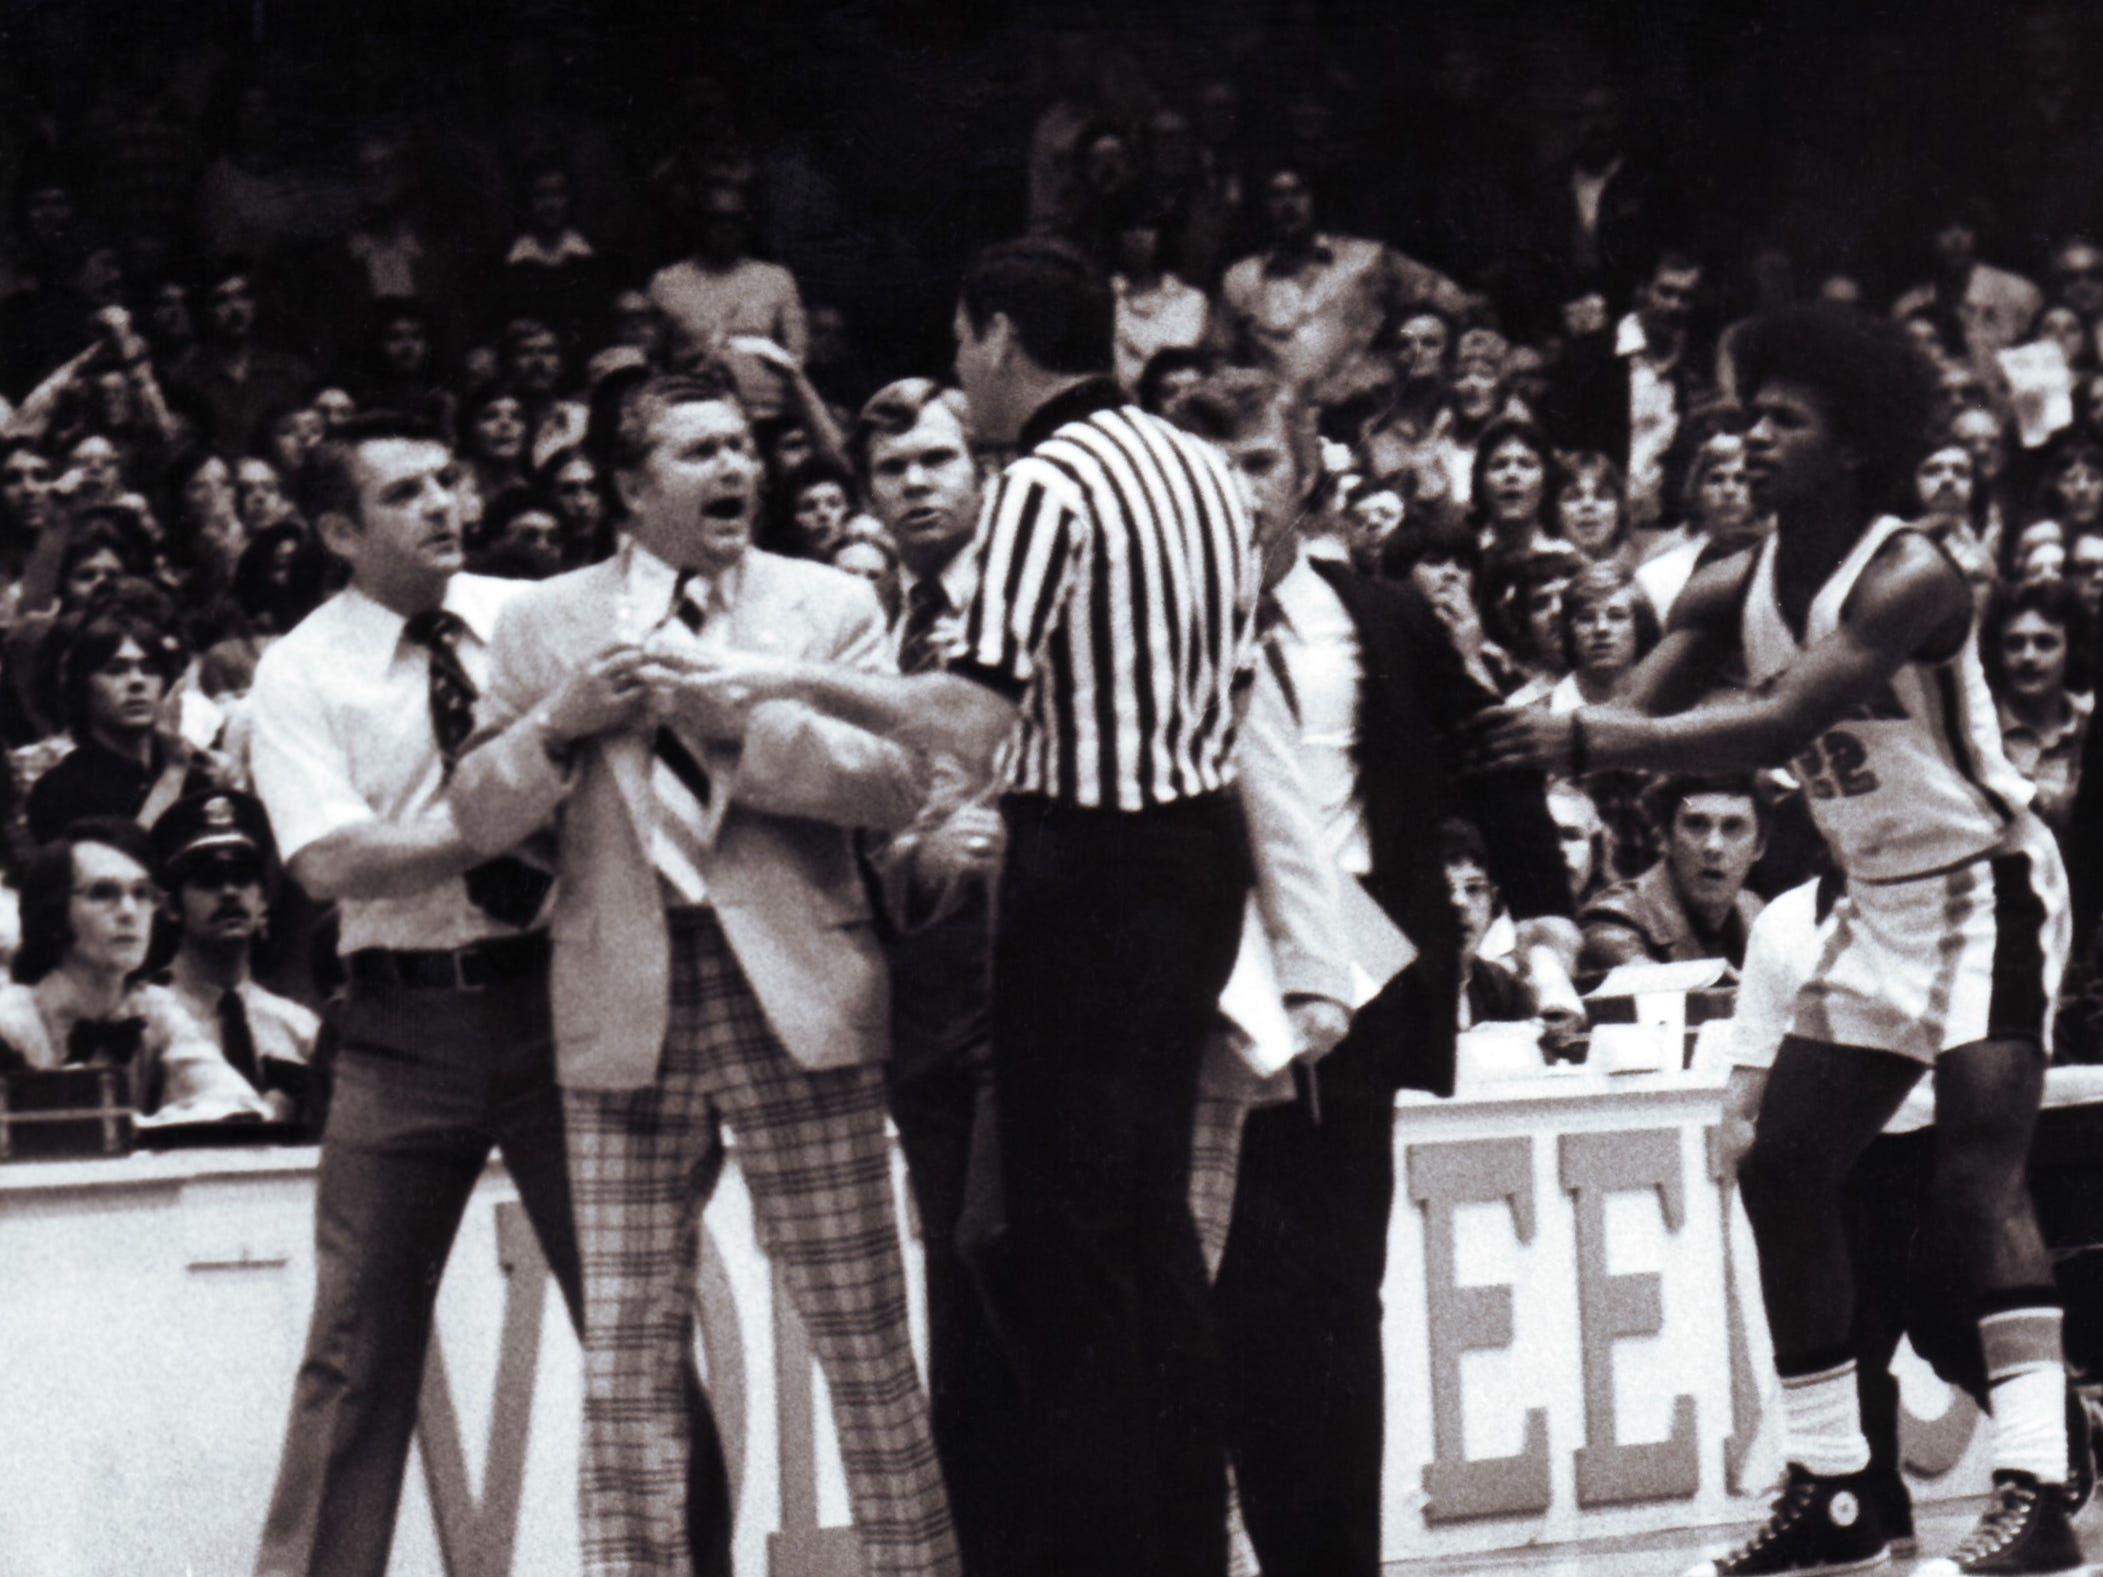 University of Tennessee basketball Coach Ray Mears has a dIsagreement with the officials in a 1976 photograph.